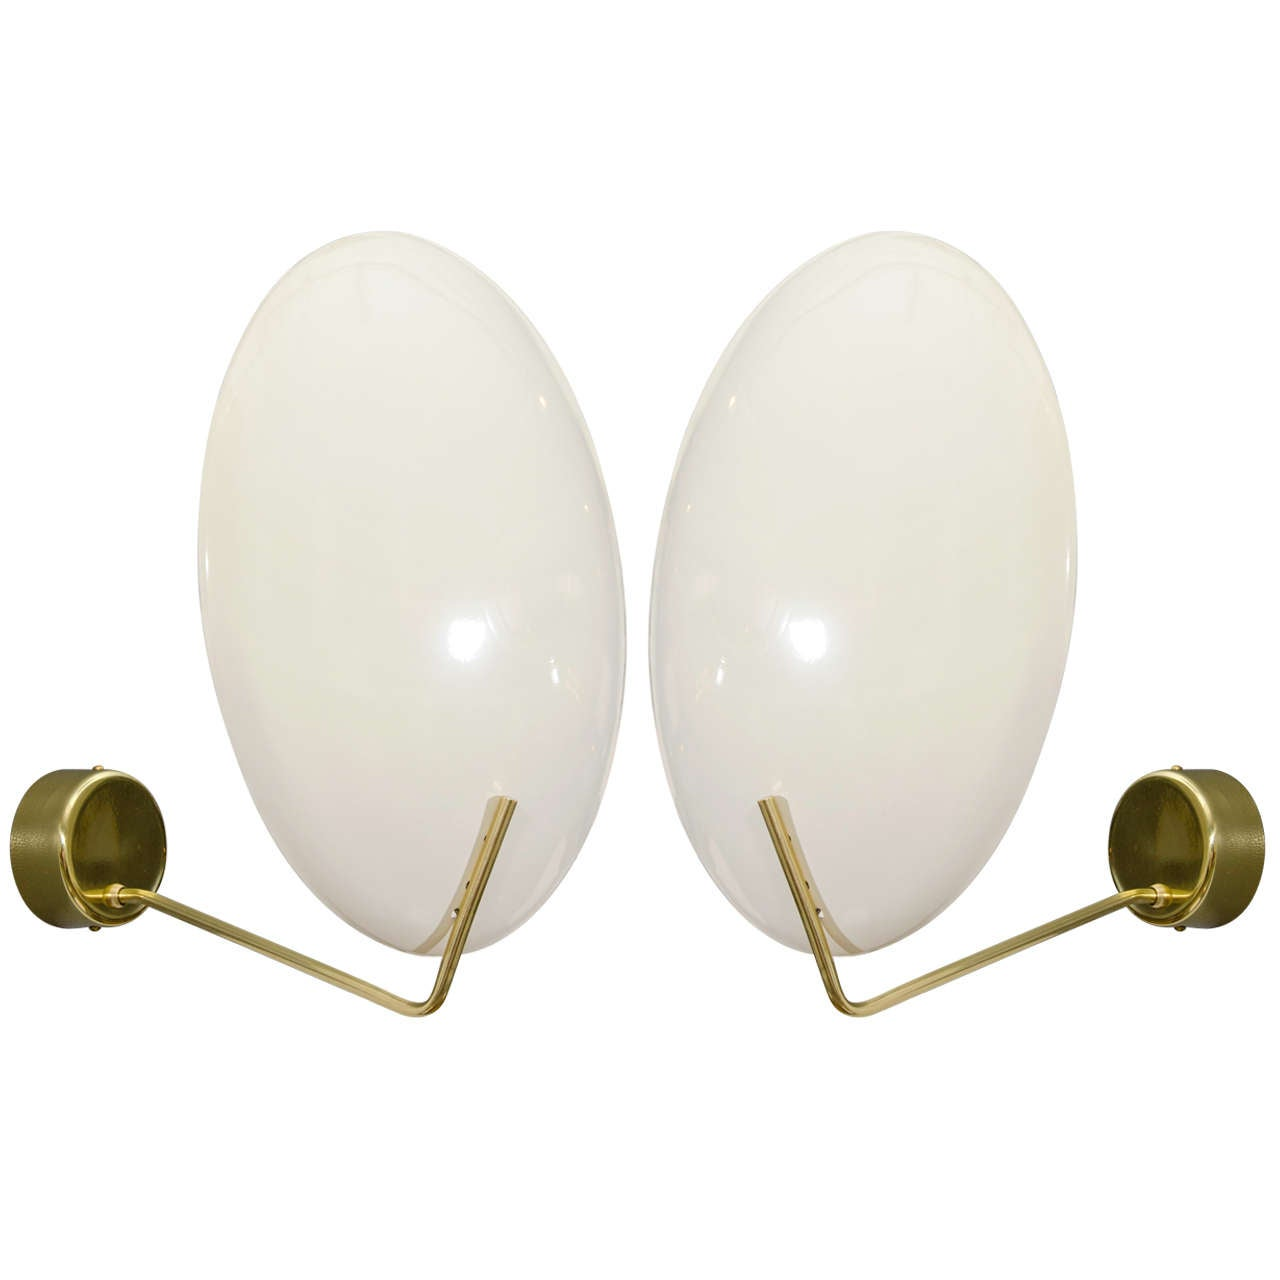 Pair of Stilnovo Sconces 1